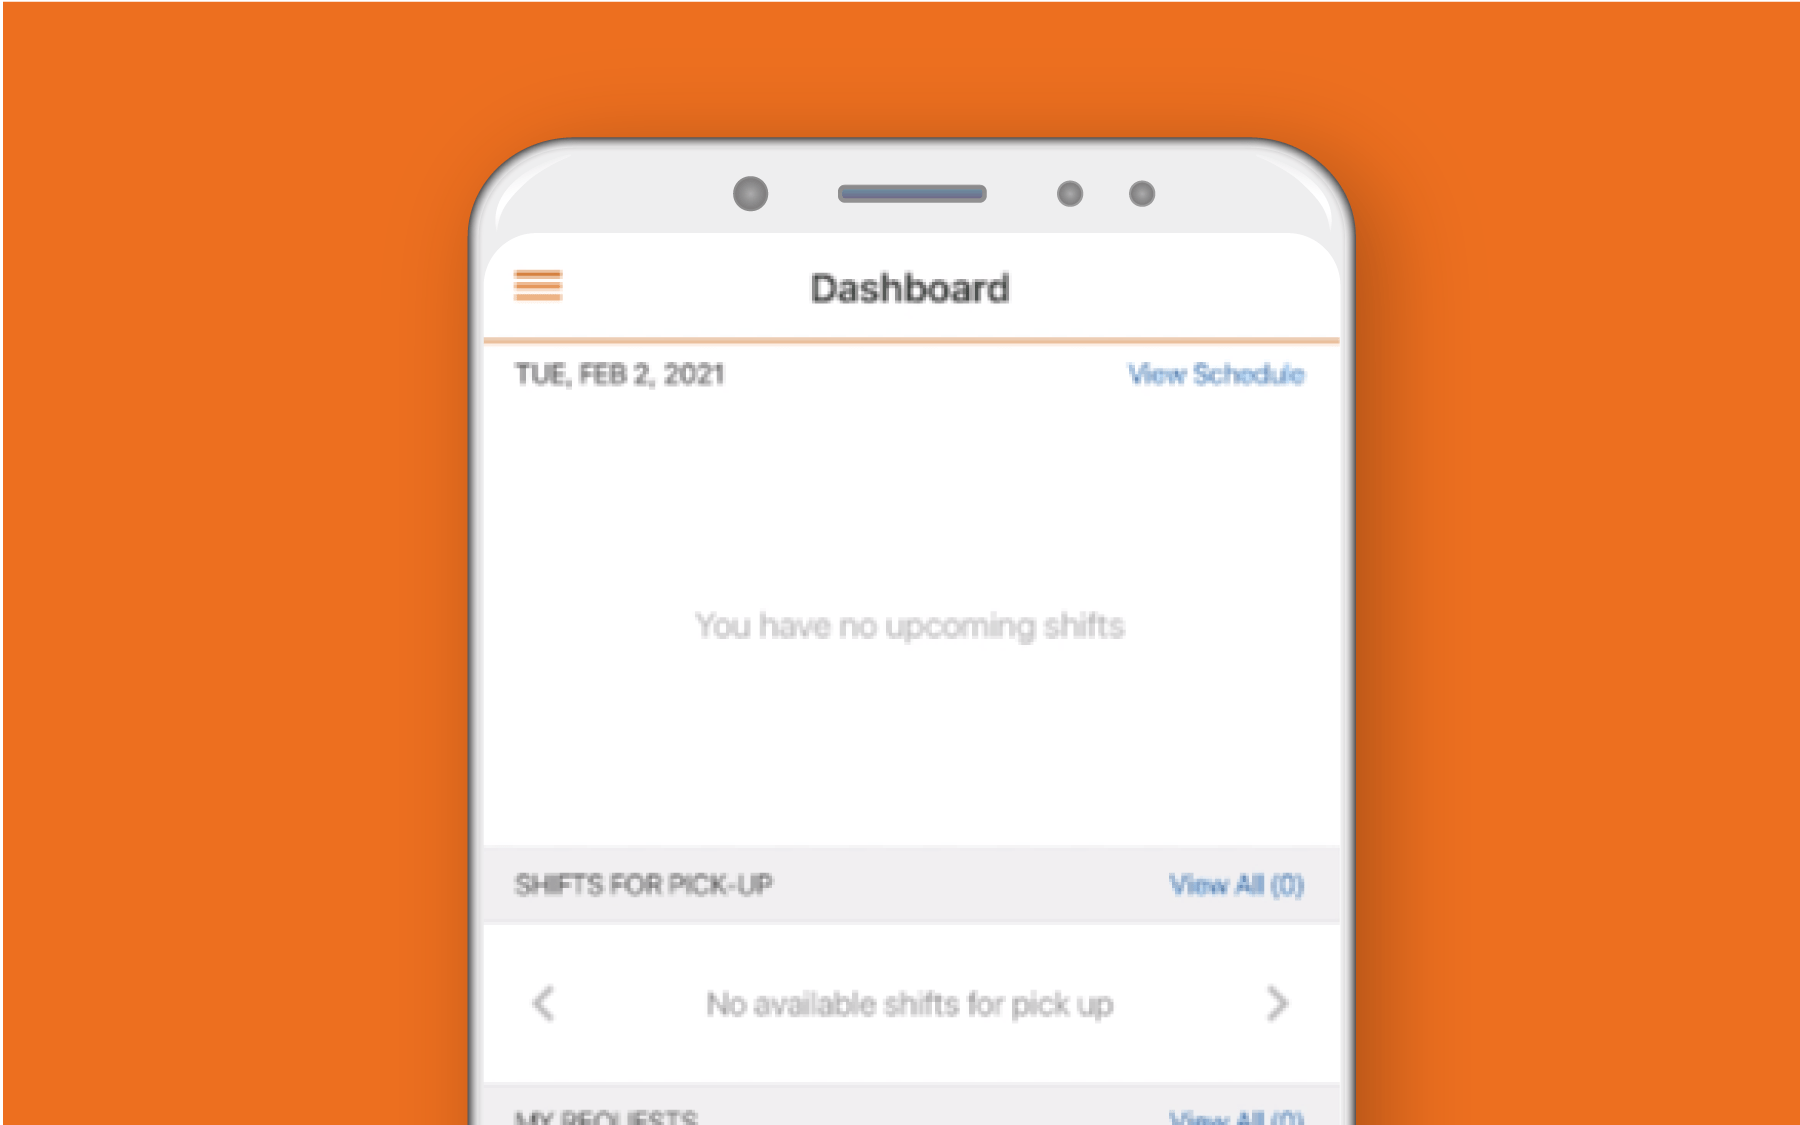 Mobile phone showing employee dashboard against orange background